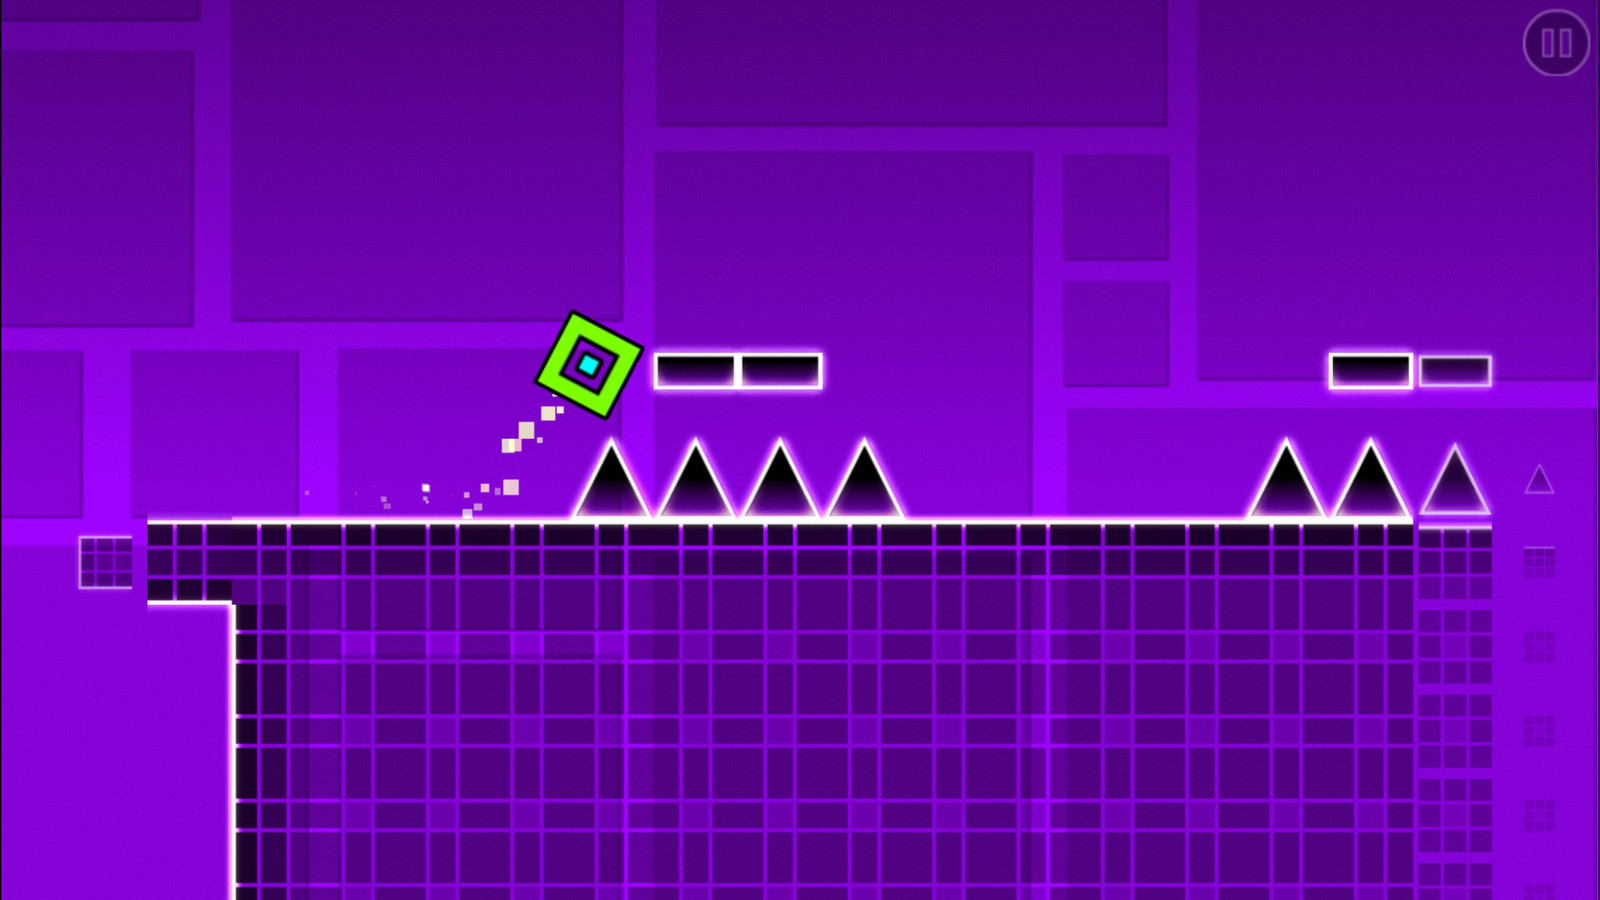 cpm homework help geometry dash on computer frudgereport47 web cpm homework help geometry dash on computer